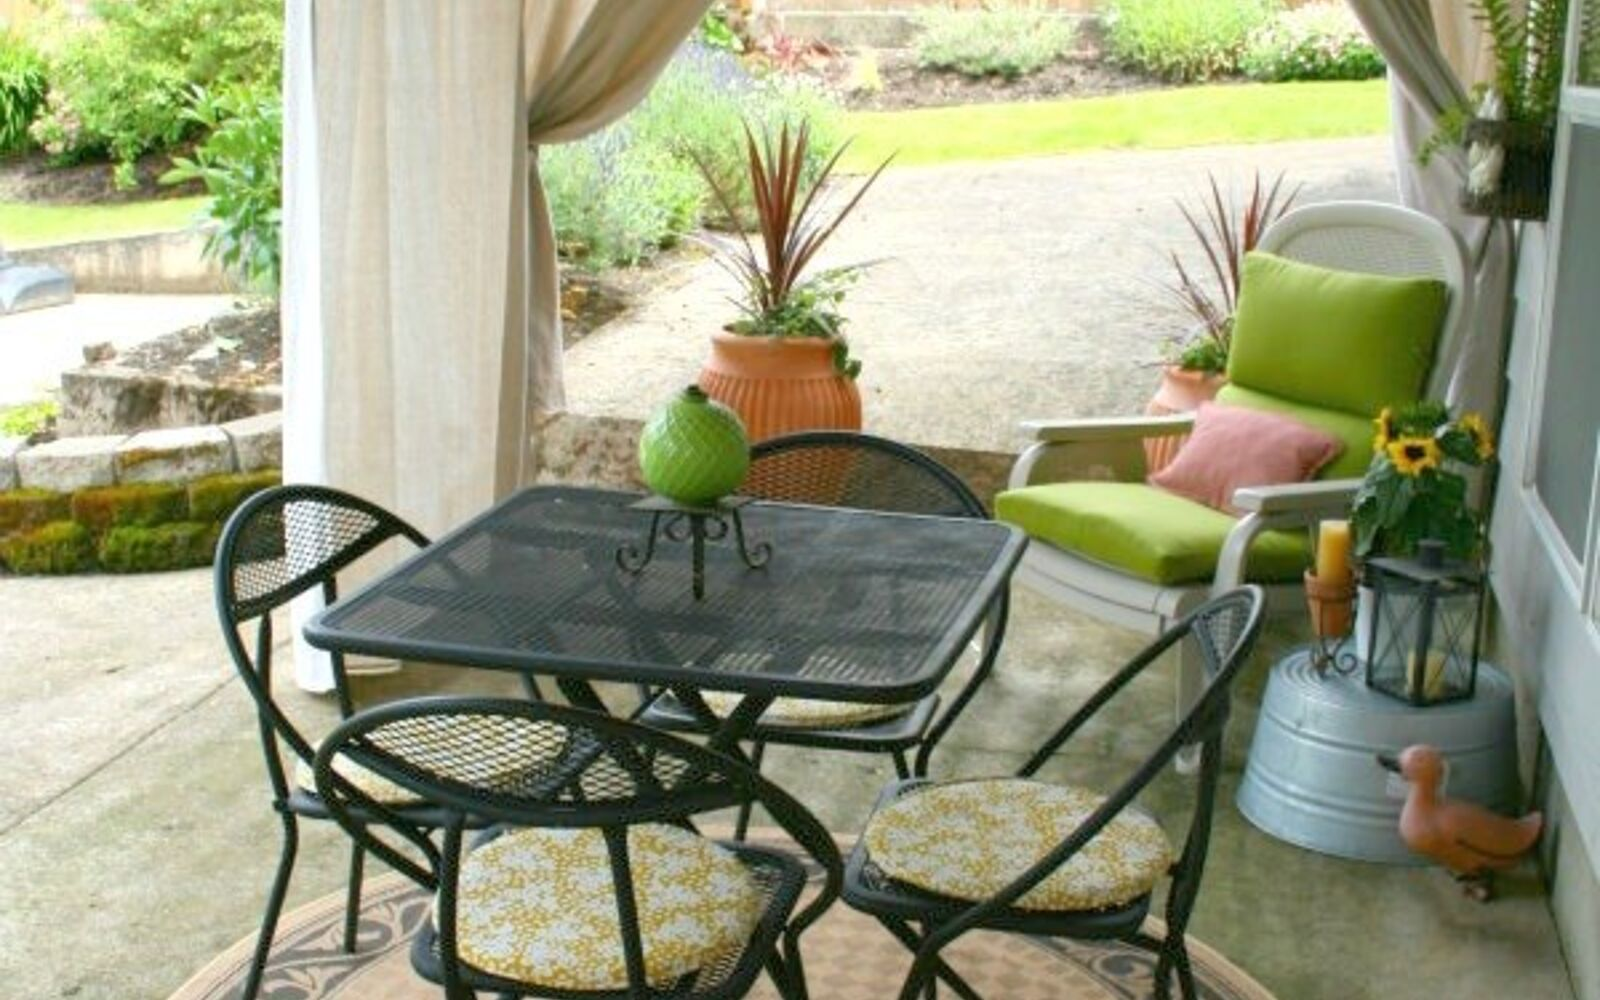 s 11 tips tricks for making your diy deck look amazing, decks, Hang drapes to make it more secluded